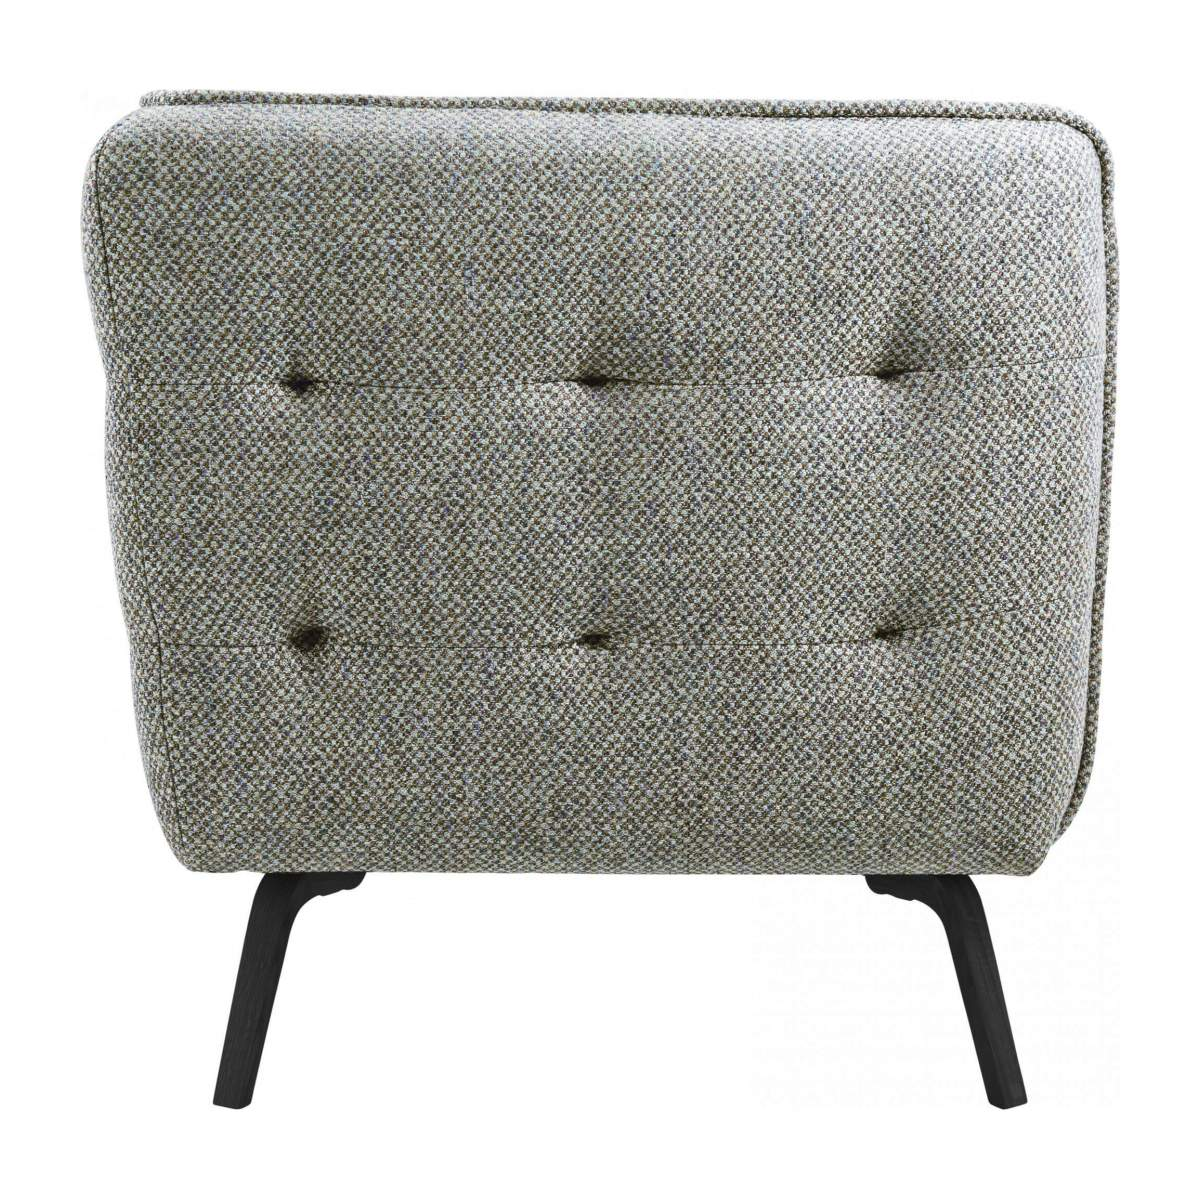 3 seater sofa in Bellagio fabric, organic green and dark legs n°4